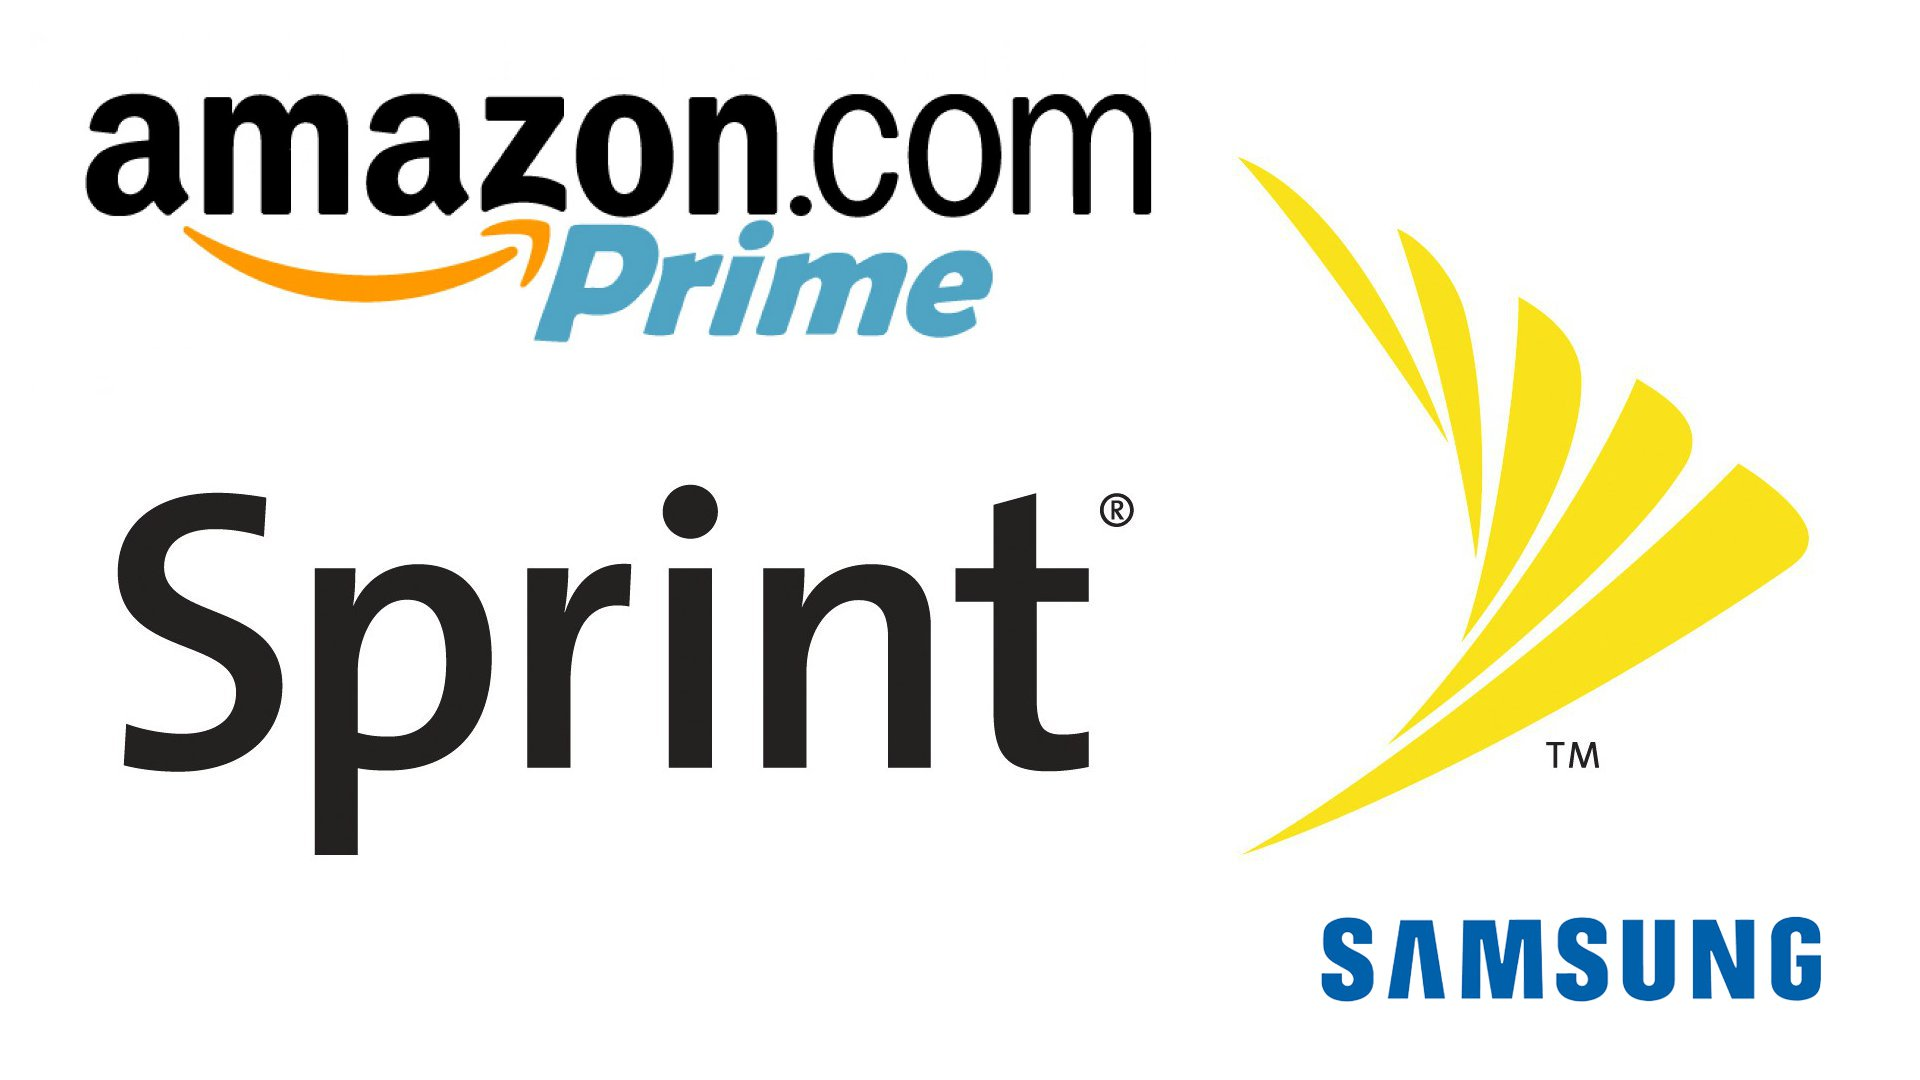 Sprint Offers 1-Year Free Amazon Prime With Samsung Phones